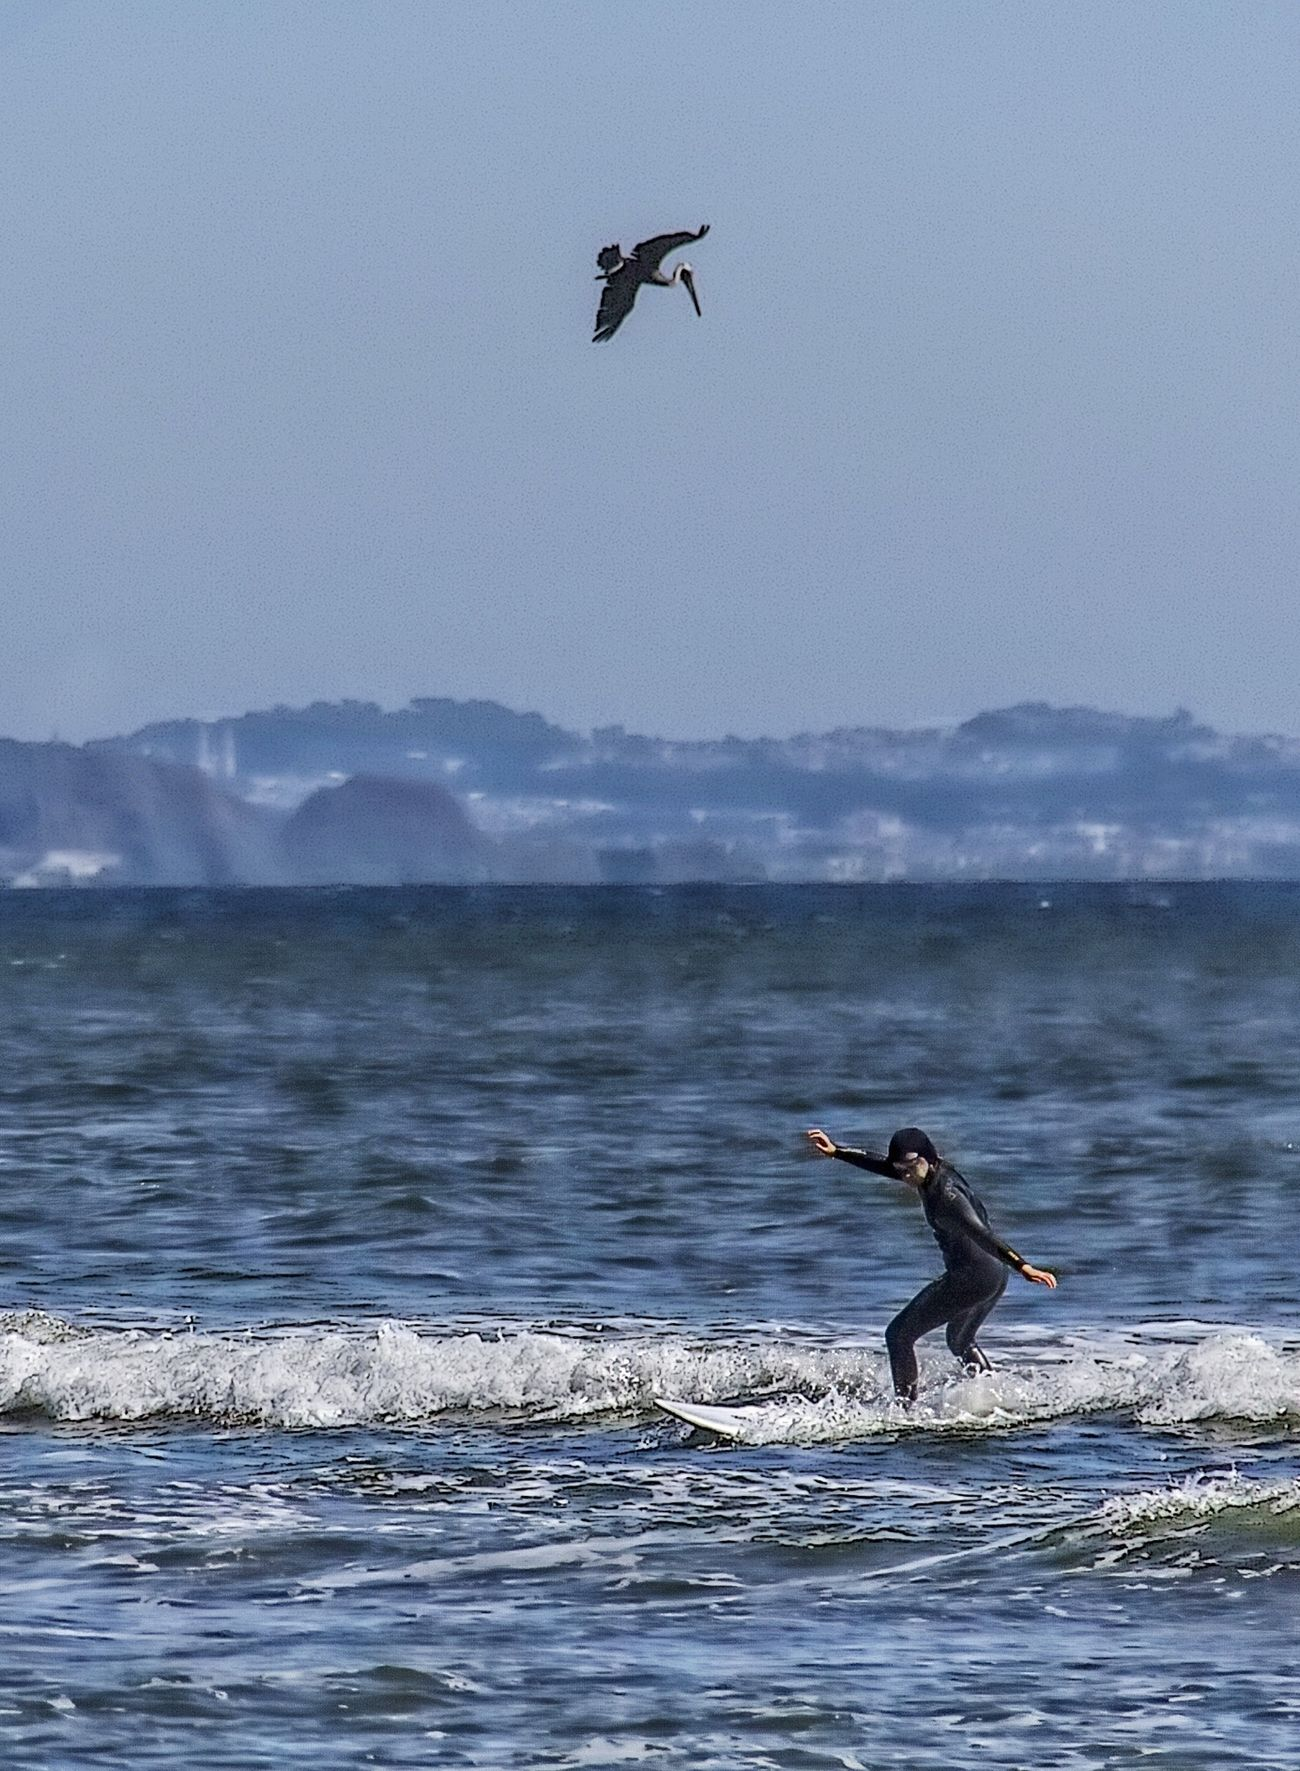 Bird watcher. Water_collection Eye4photography  Surfin' Ocean